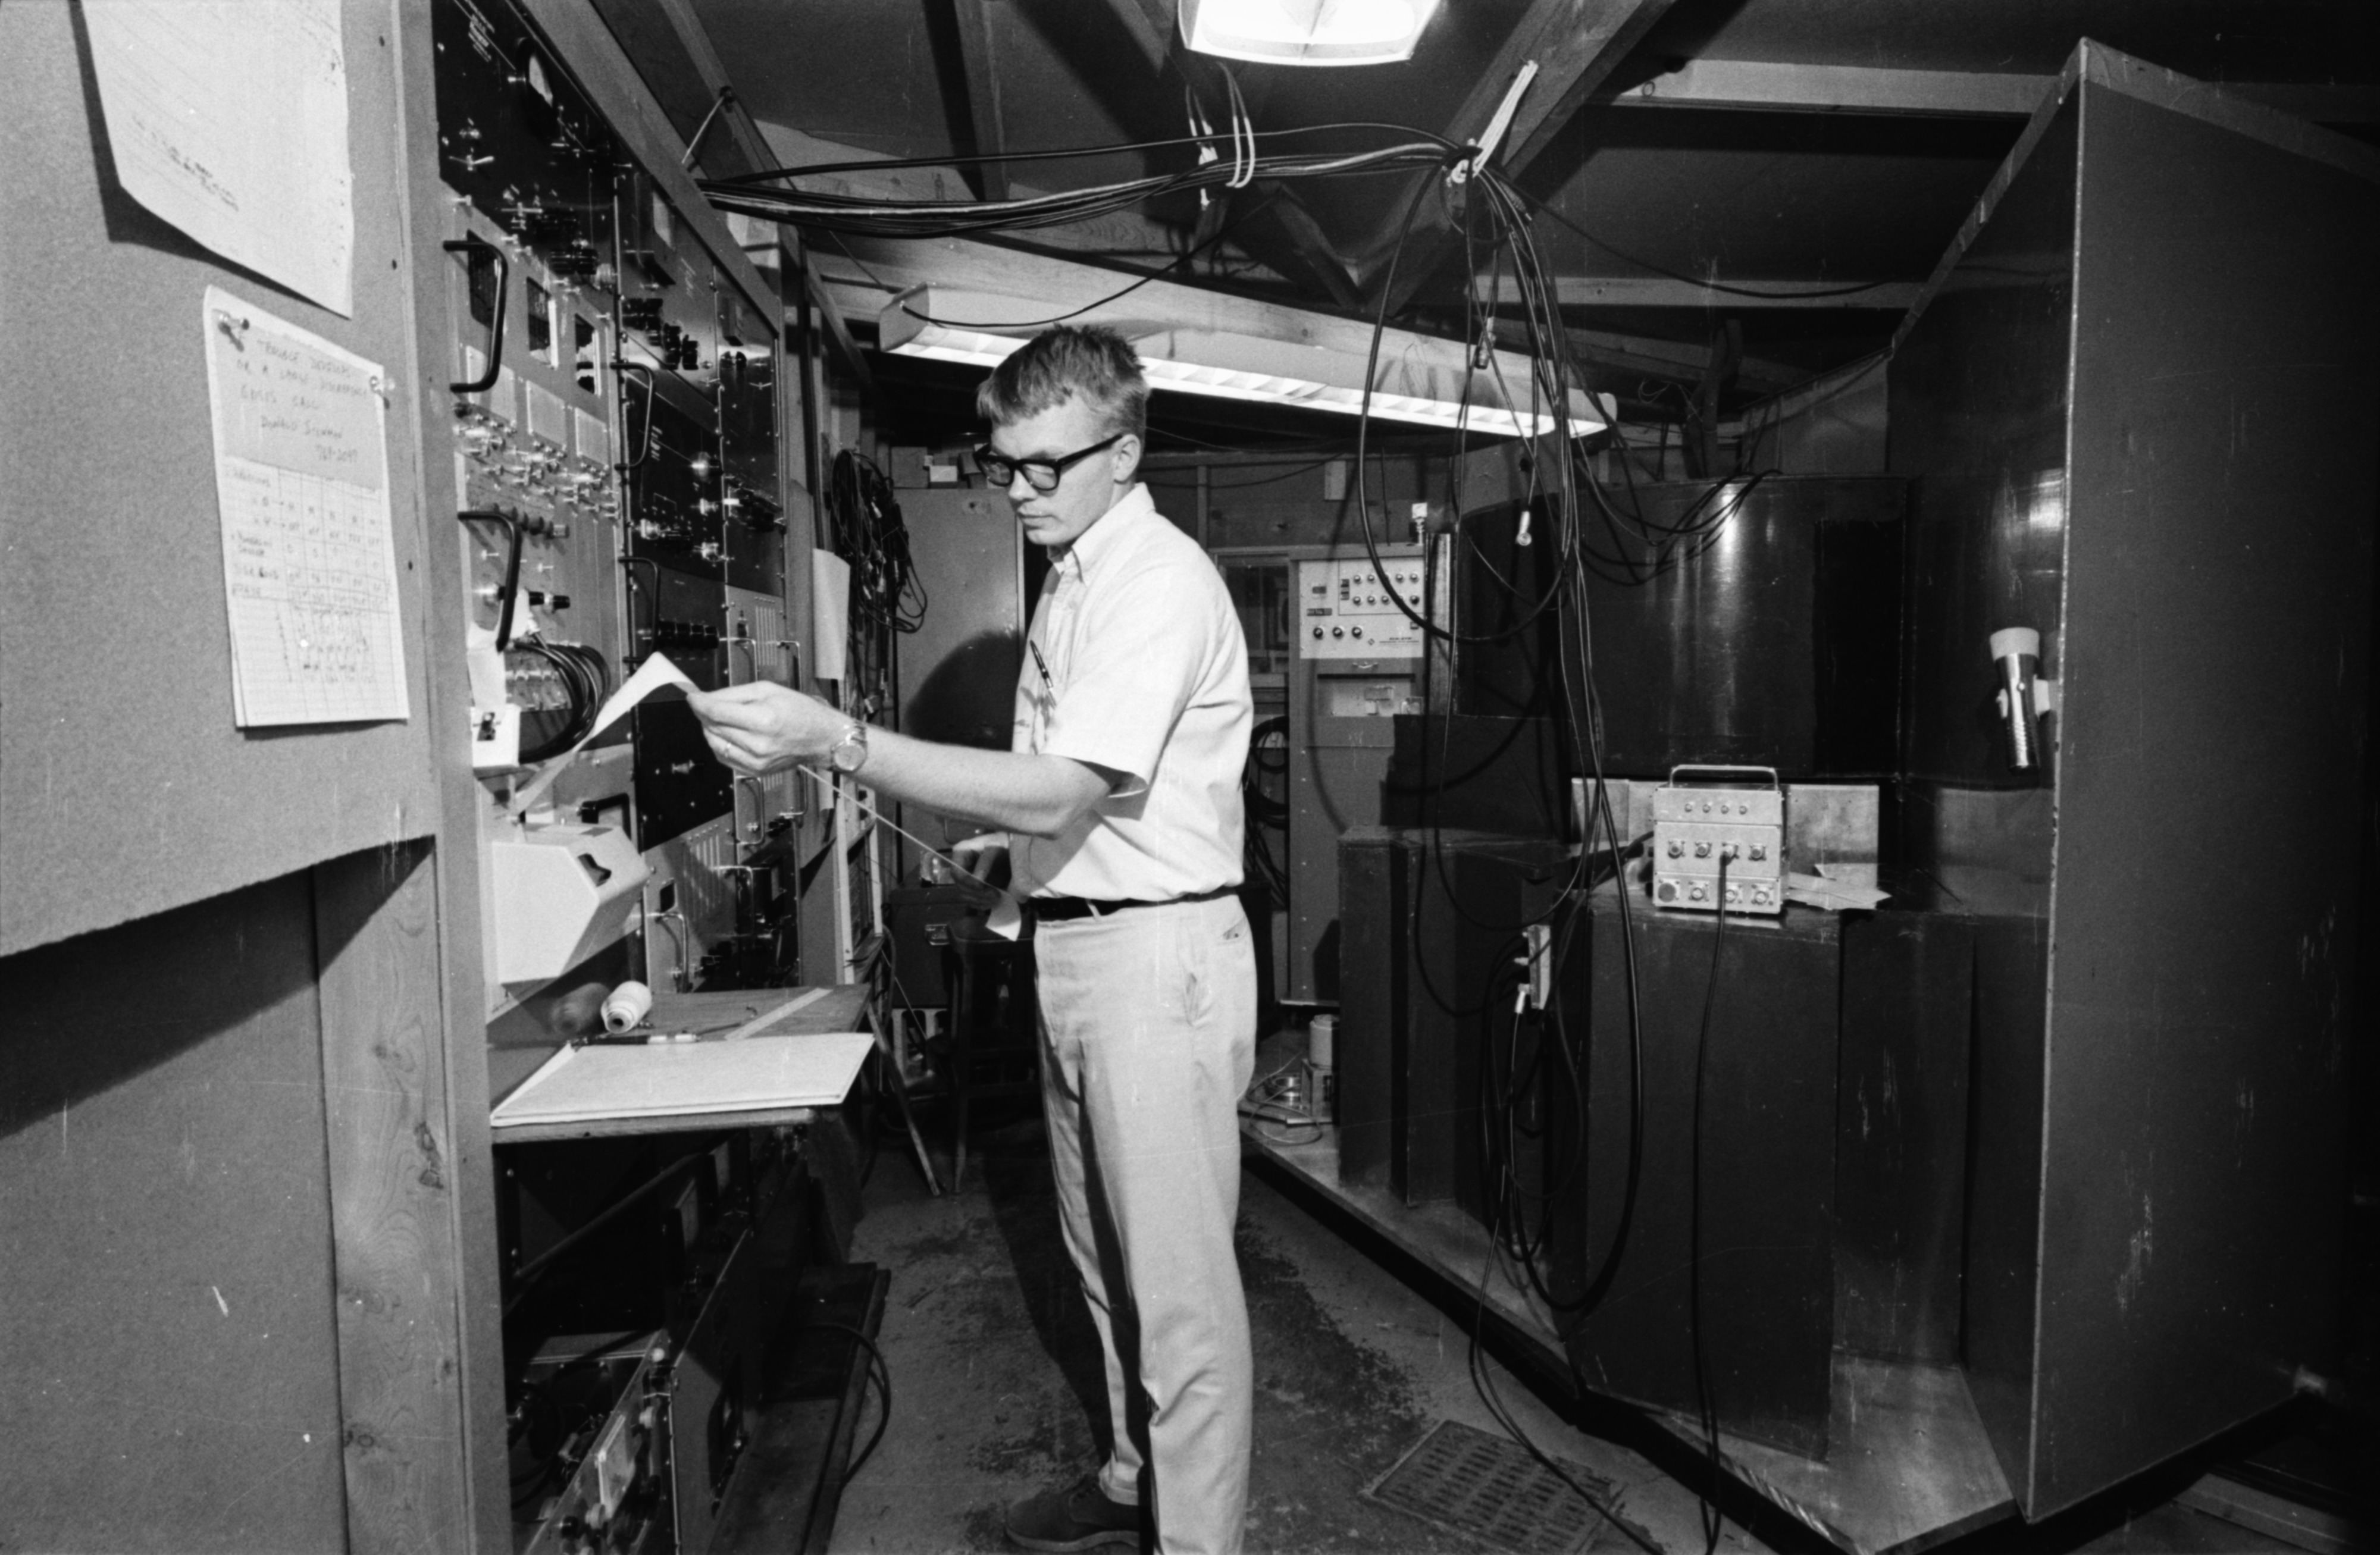 Lee A. Feldkamp, graduate student working in the Phoenix Memorial Laboratory, North Campus, August 1968 image